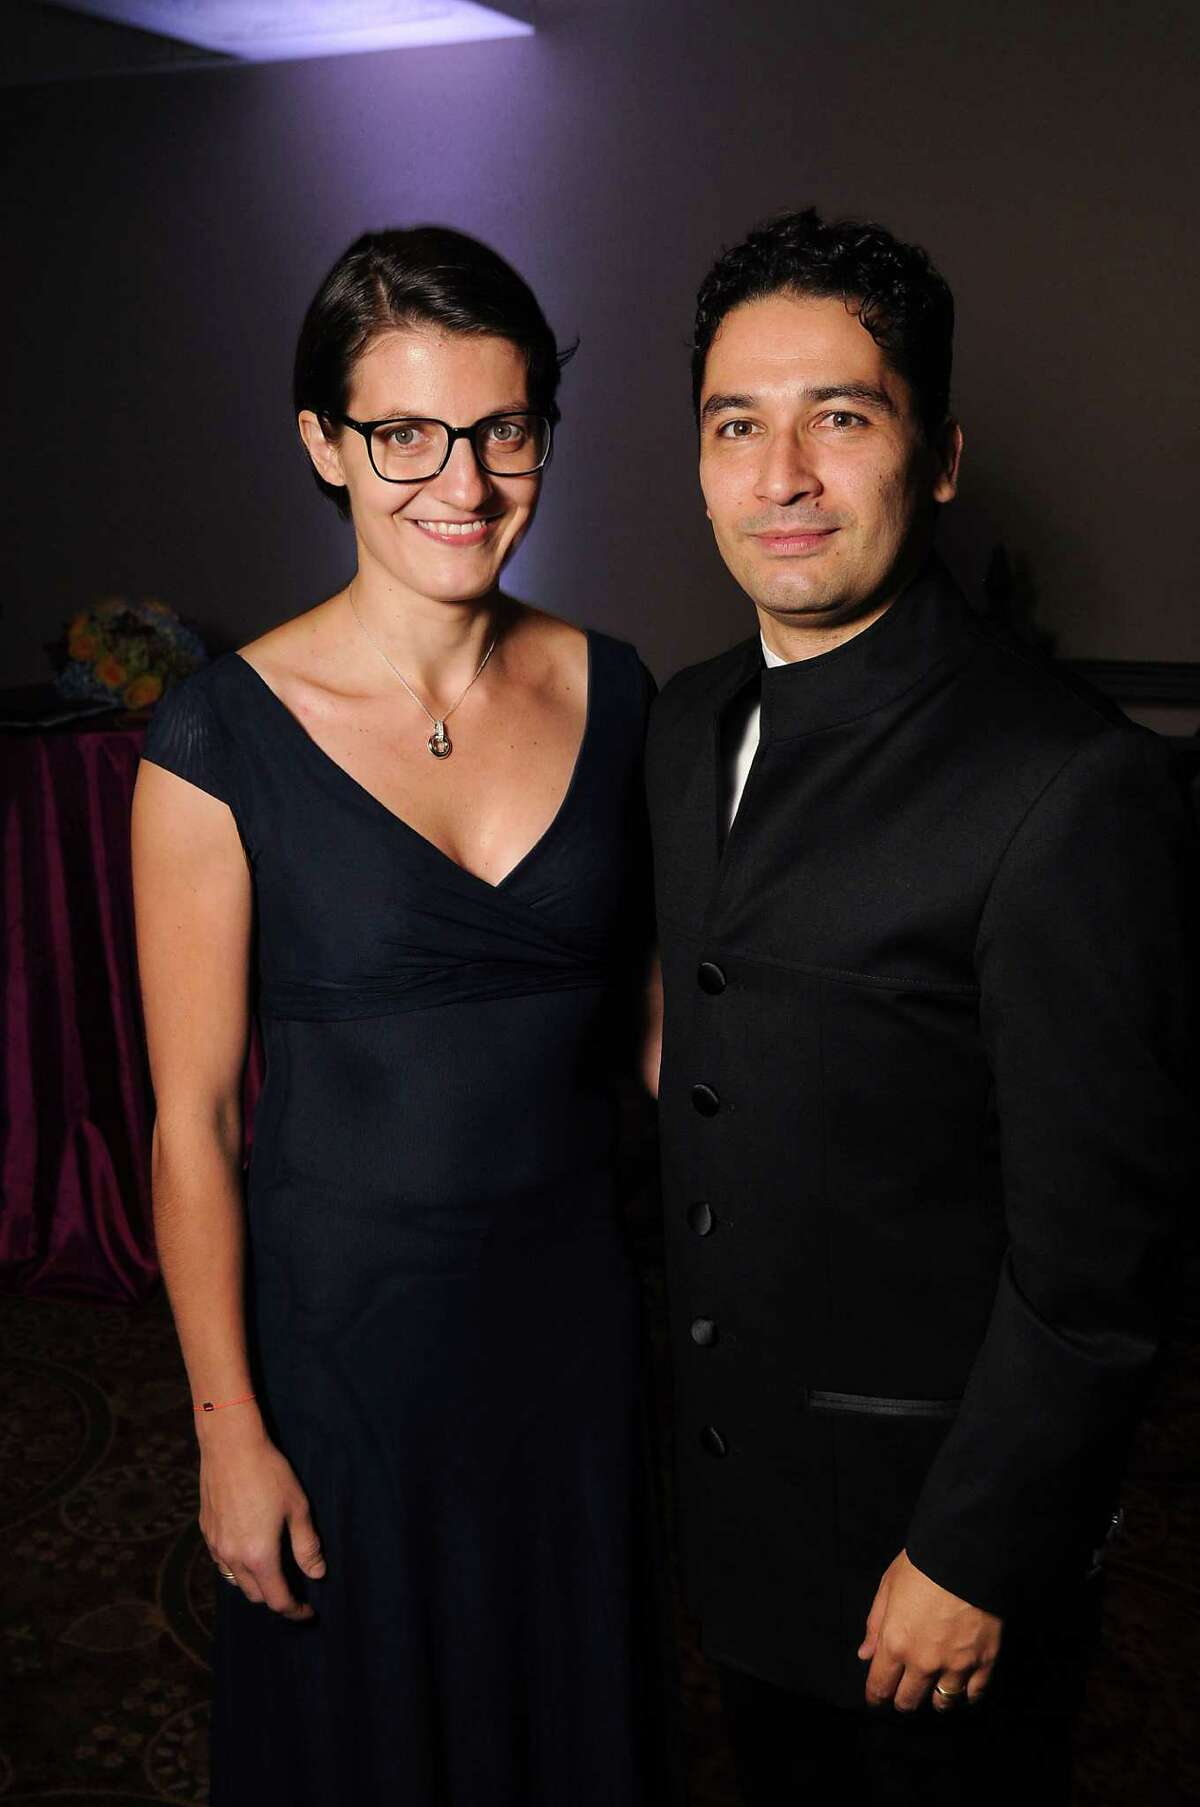 Houston Symphony music director Andrés Orozco-Estrada and his wife, Julia Orozco-Estrada, at the Houston Symphony's Opening Night Gala at The Corinthian.